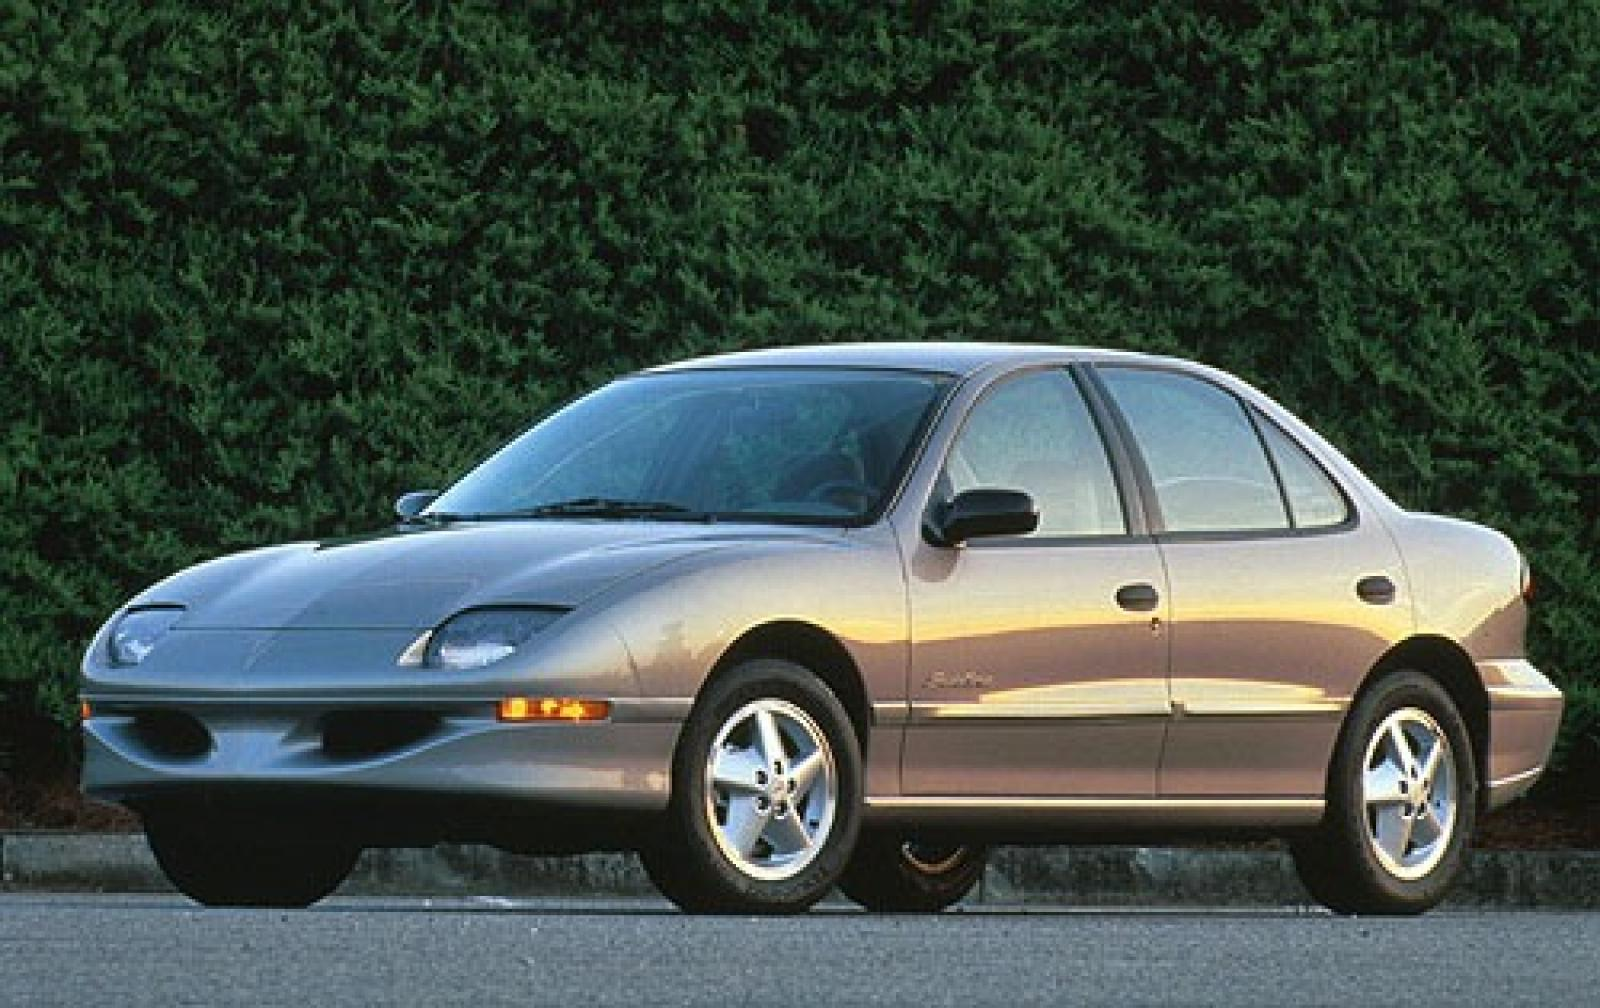 pontiac sunfire manual transmission problems